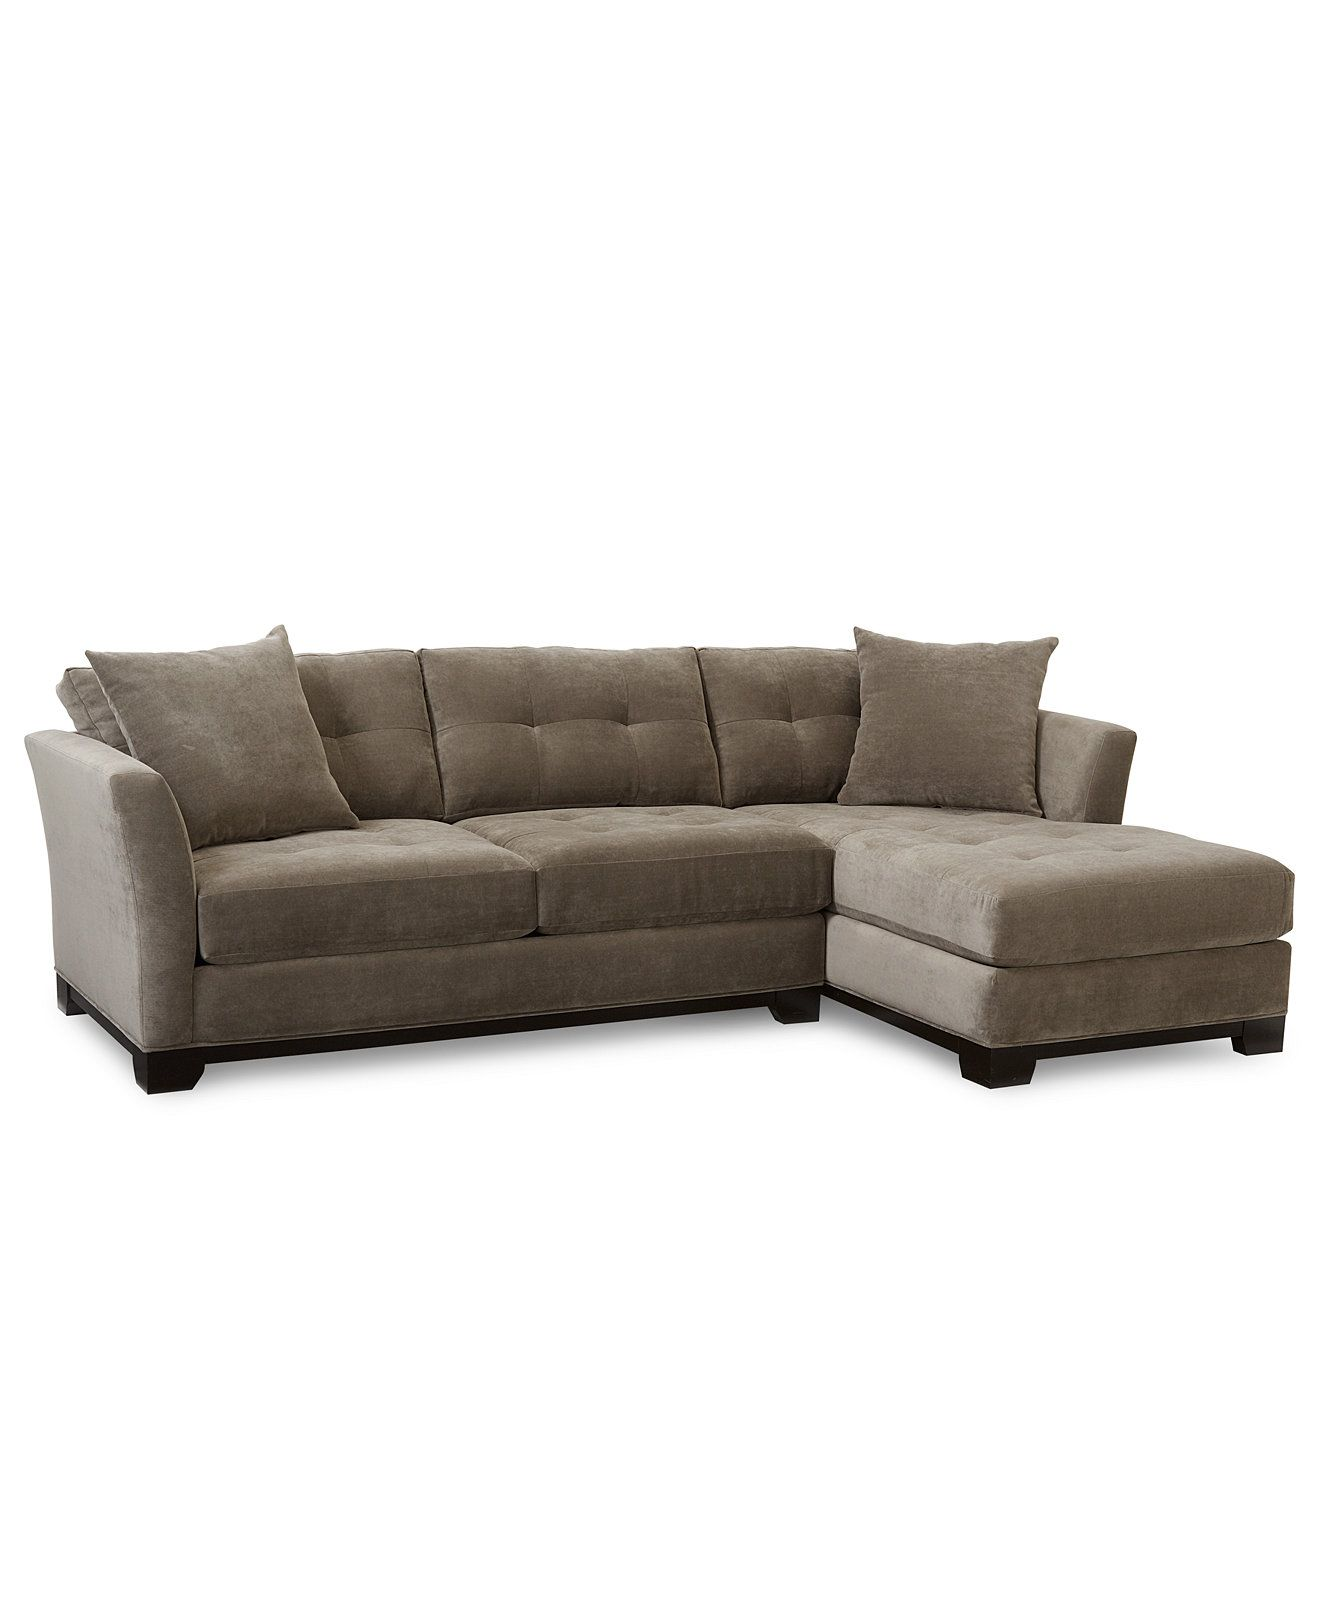 macys sectional sofa microfiber intex pull out weight limit closeout elliot fabric 2 pc chaise